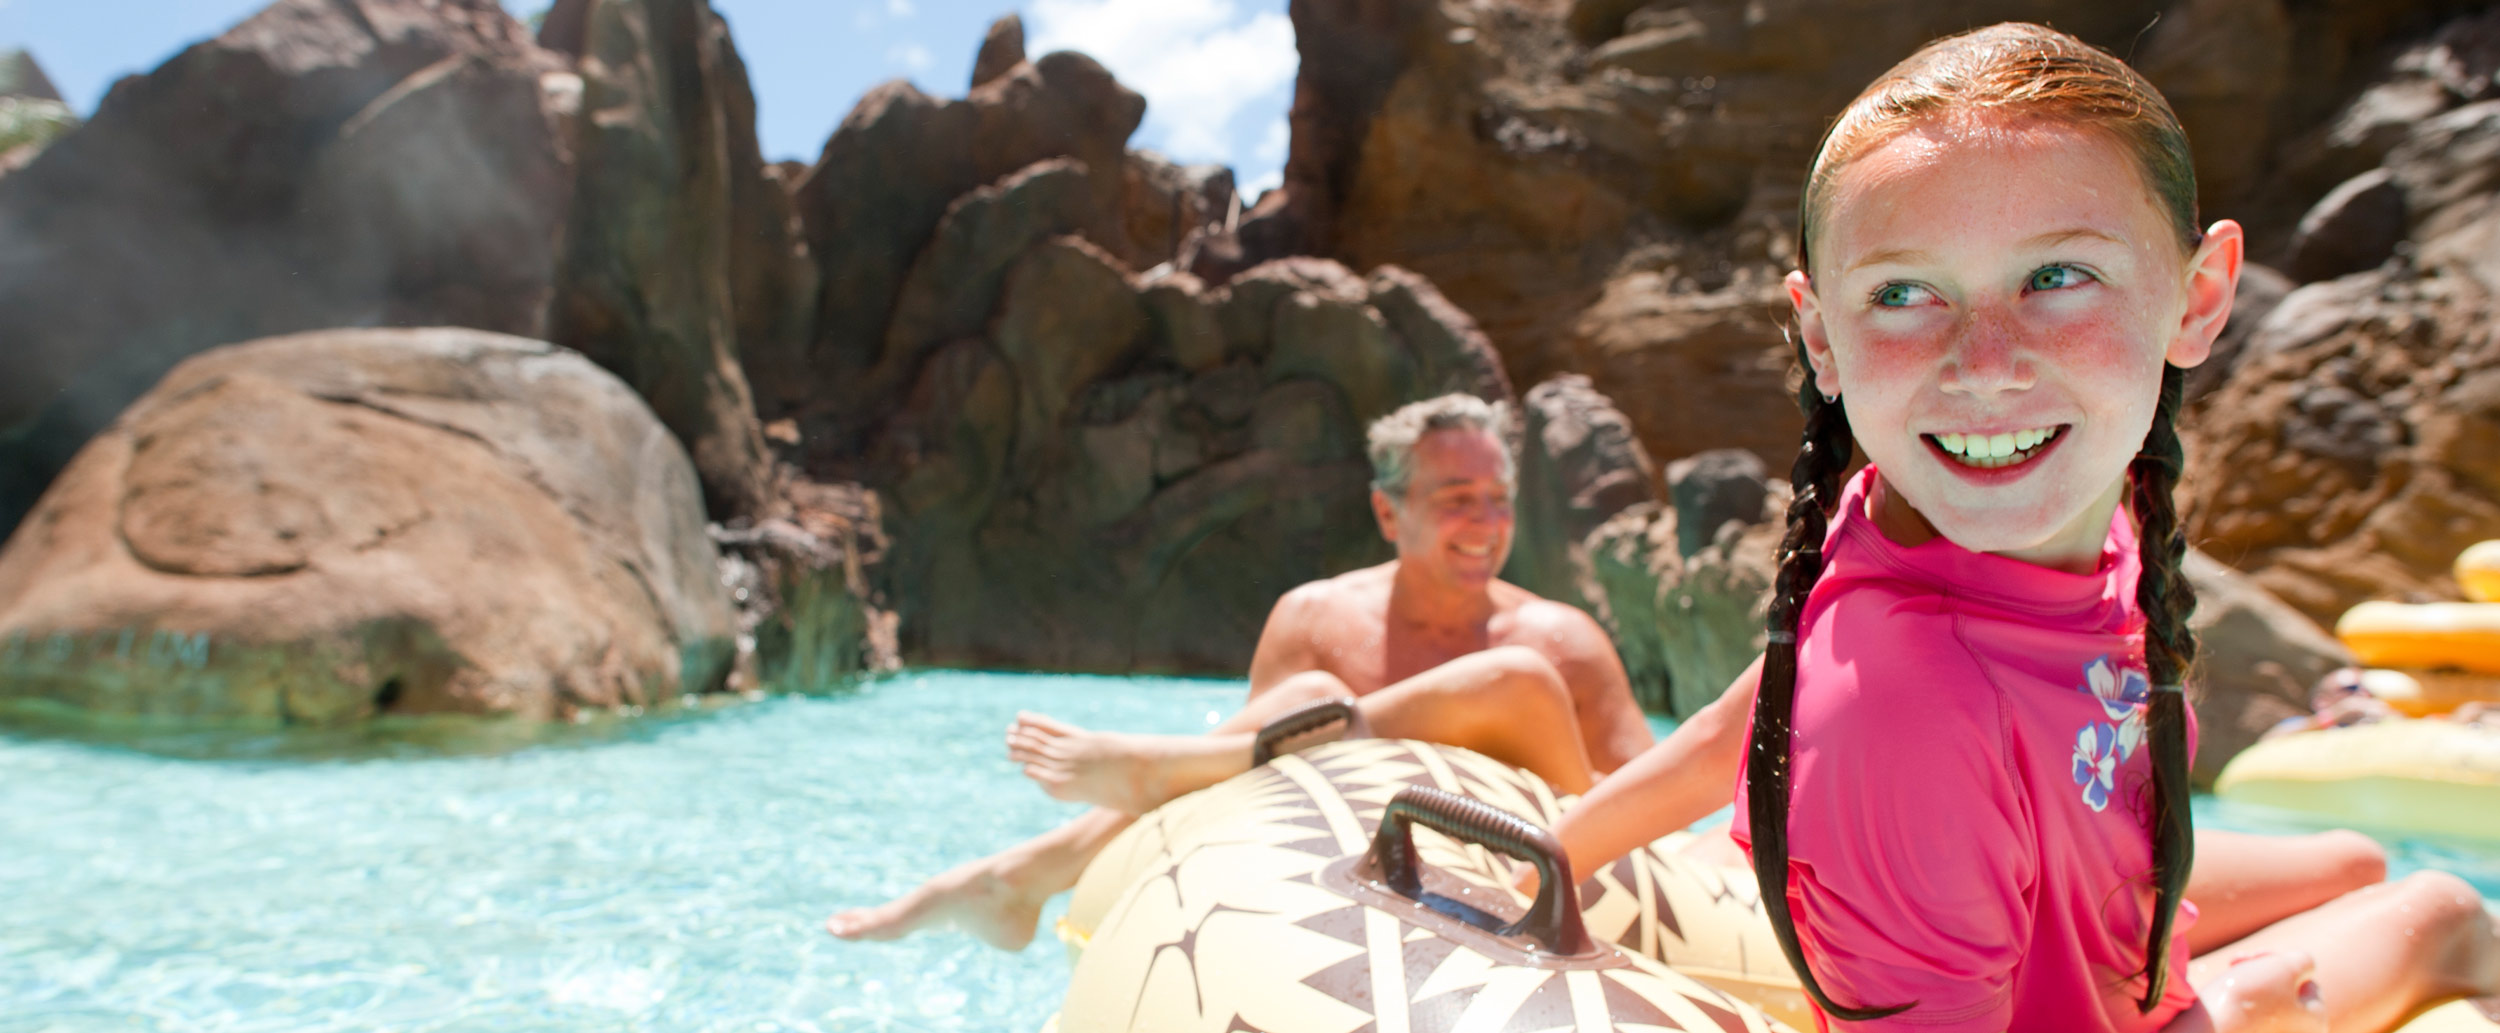 A little girl smiles, riding an inner tube on a lazy river with her dad in the background